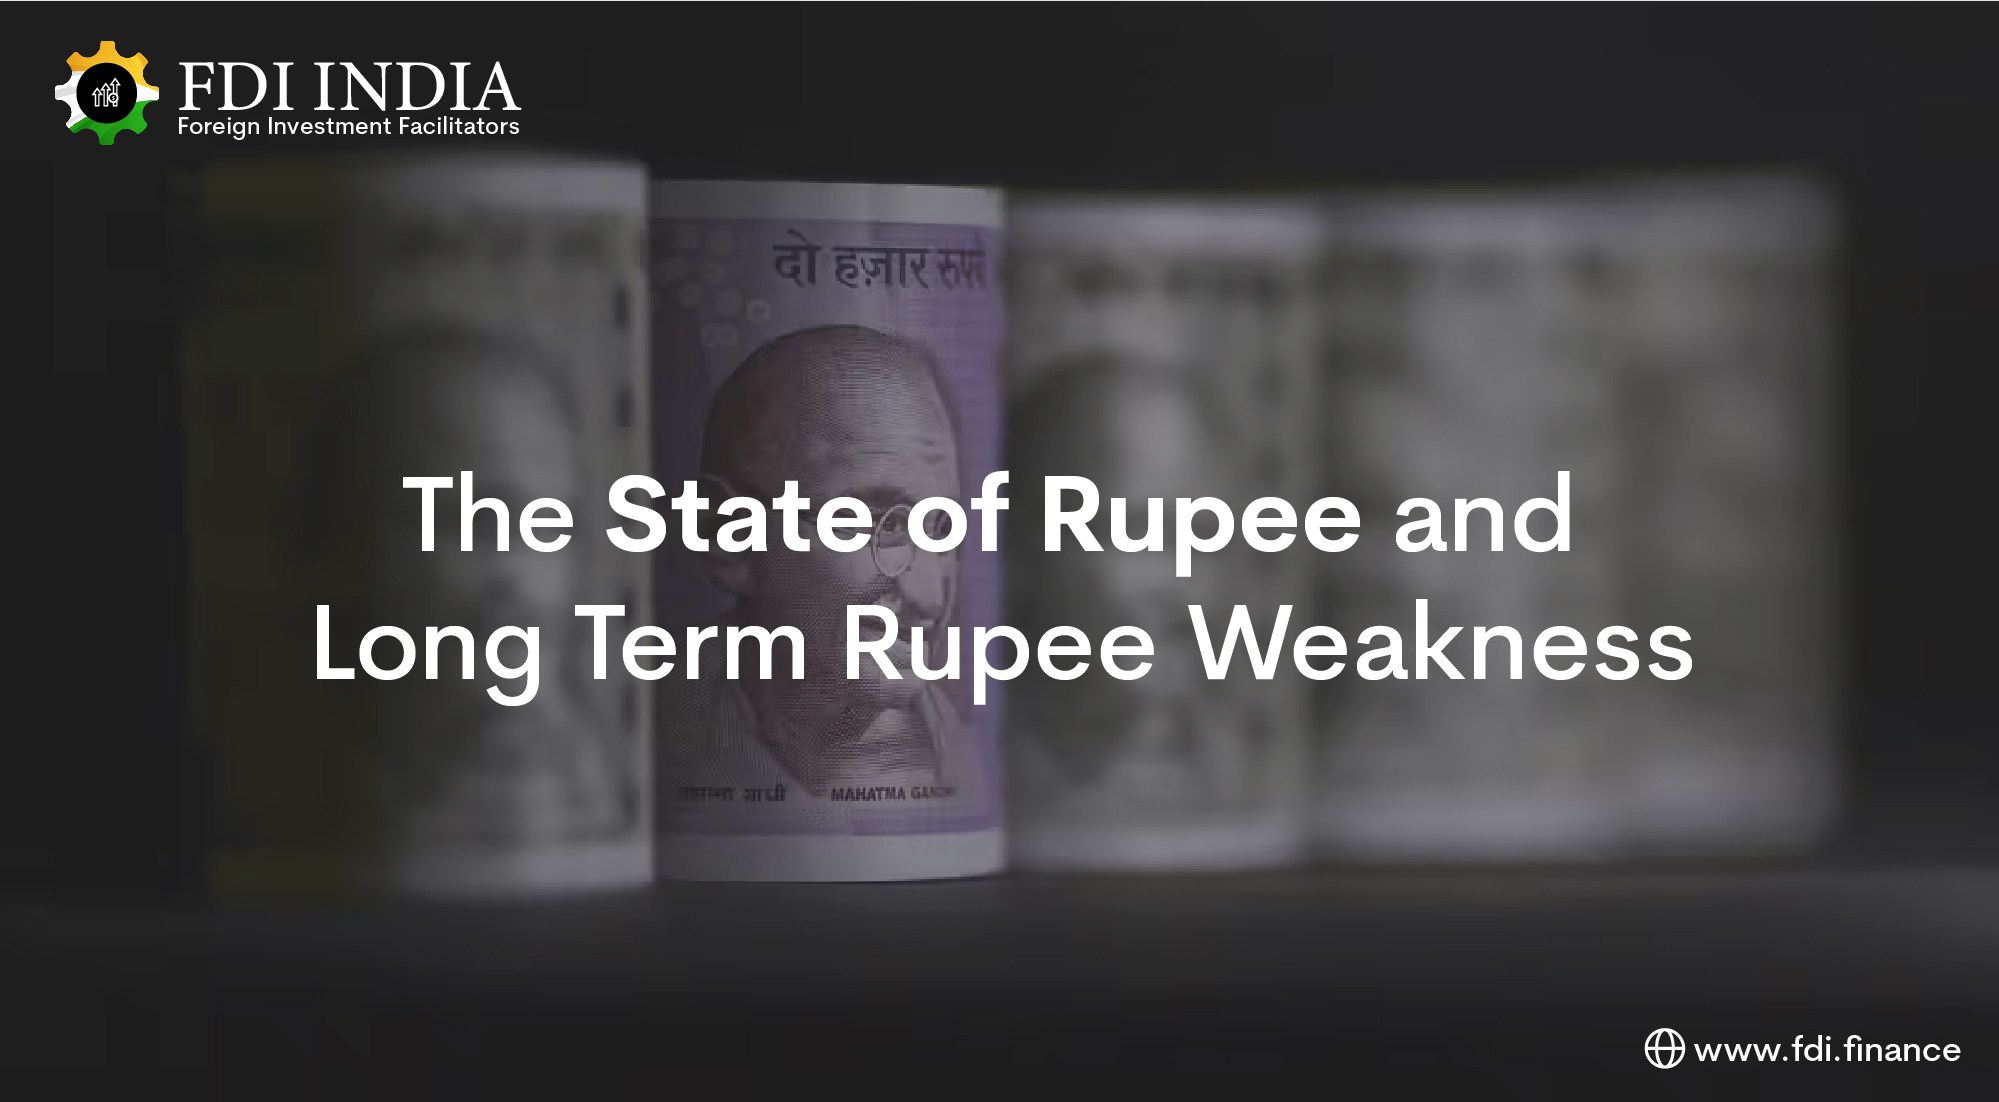 The State of Rupee and Long Term Rupee Weakness